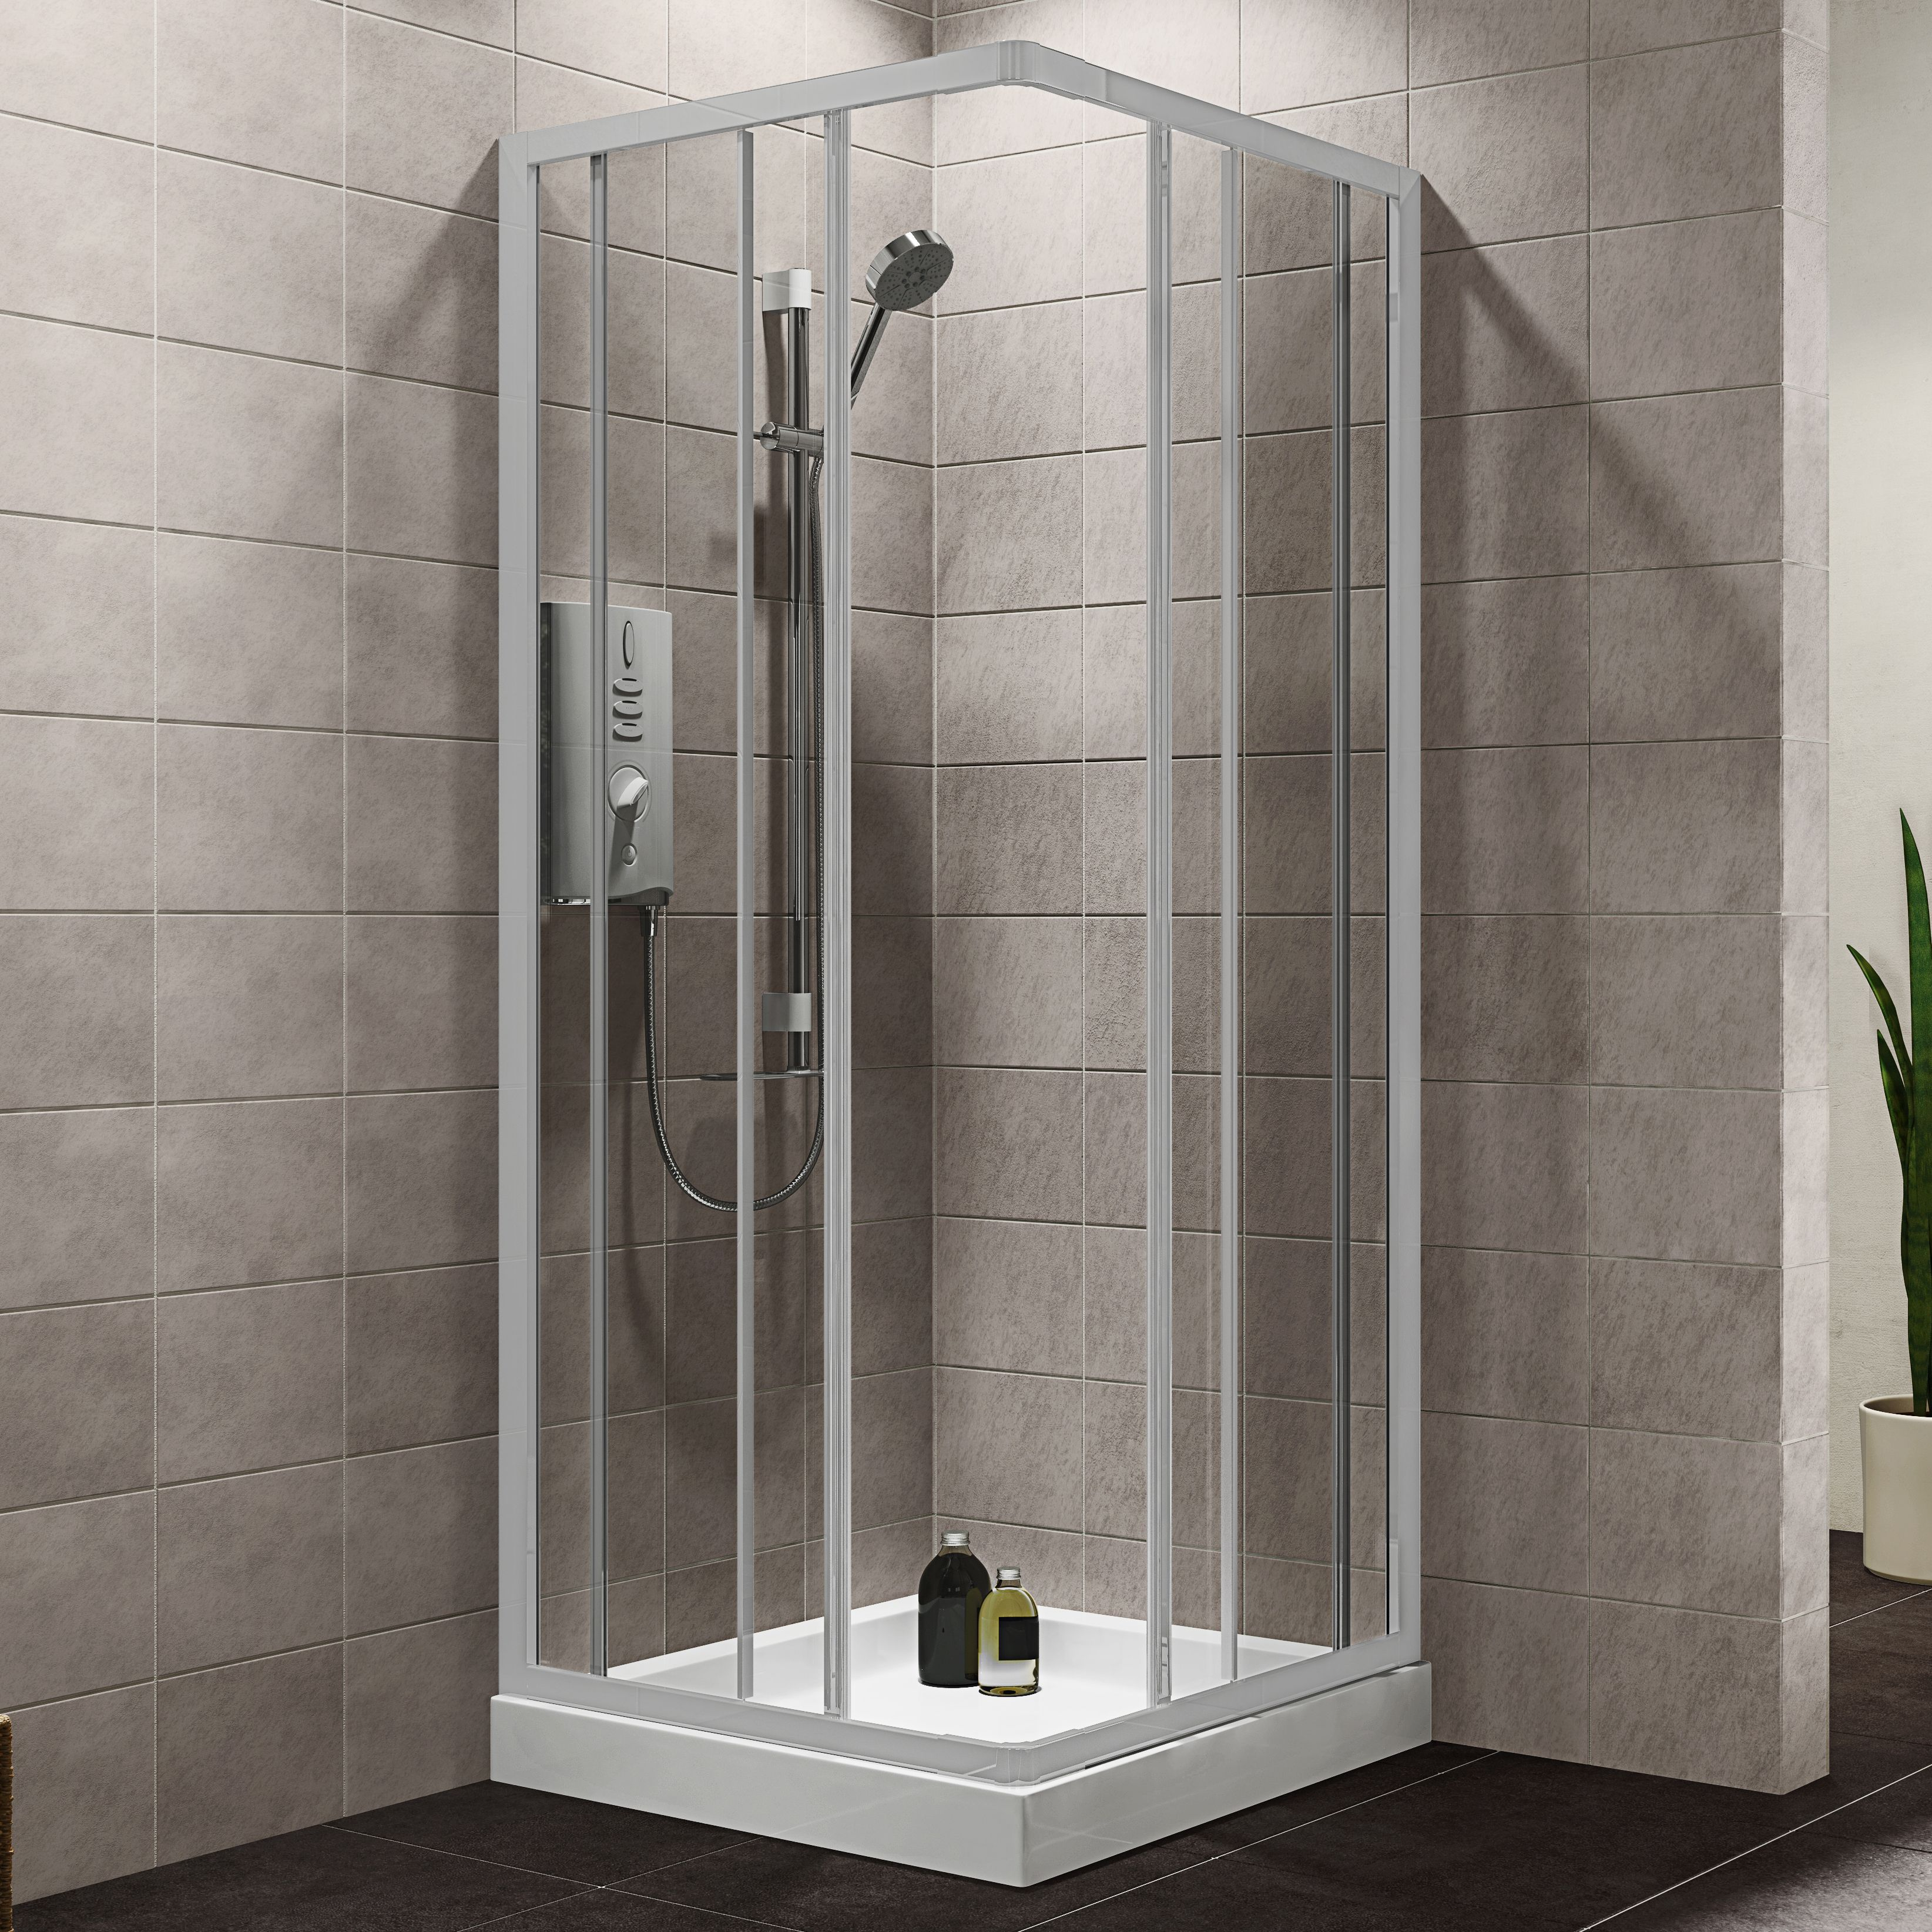 Plumbsure Square Shower Enclosure With White Frame & Double Sliding Doors (w)760-800mm (d)760-800mm